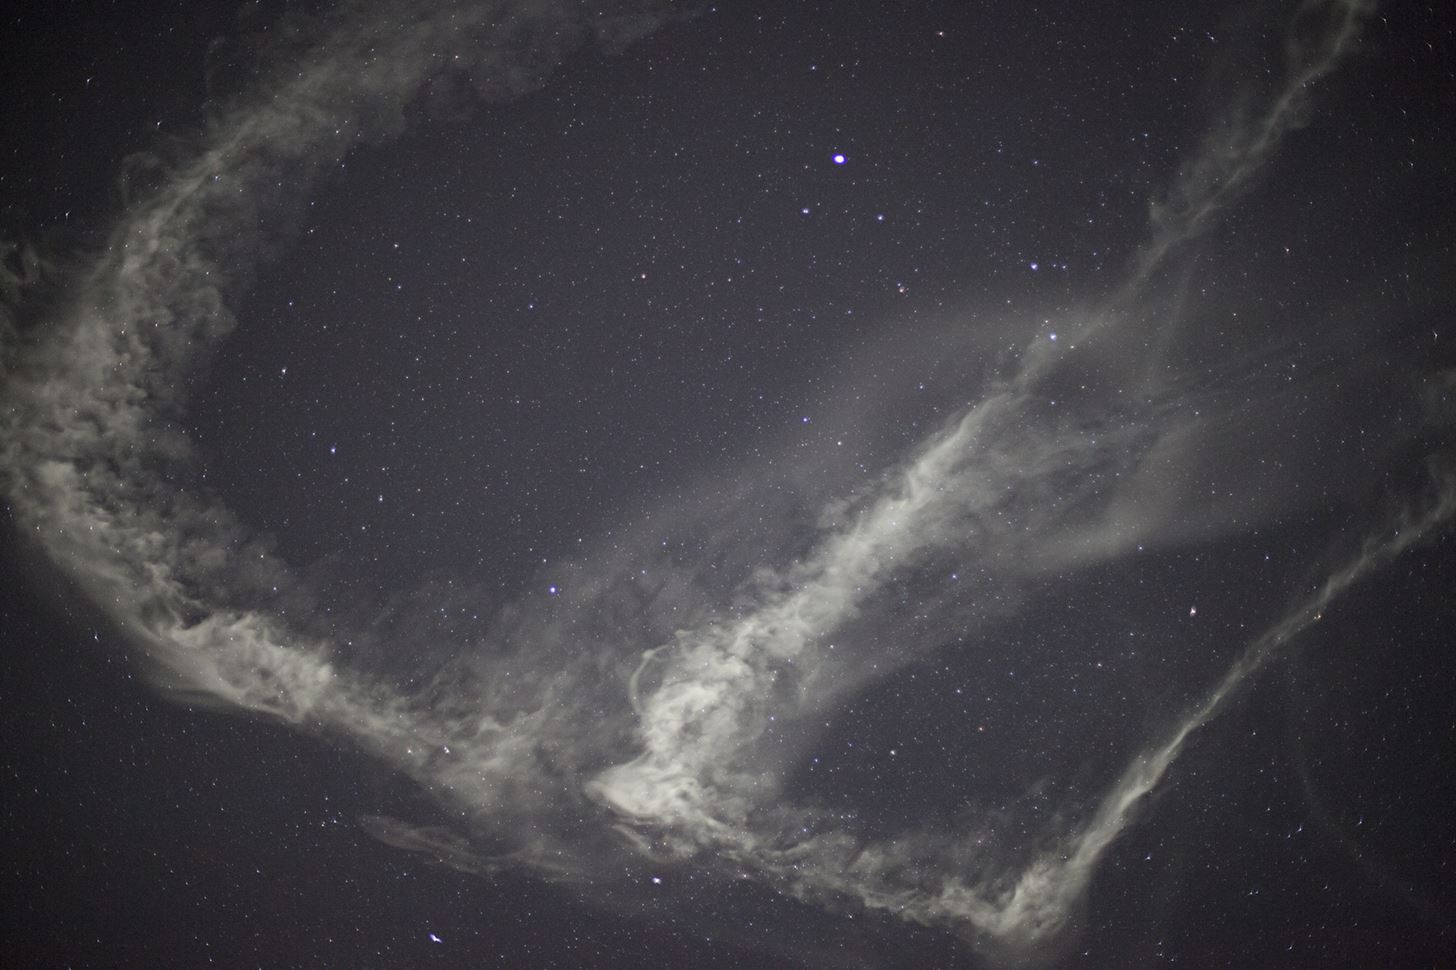 Watch NASA's Tracer Rockets Light Up the Sky with Cloud Trails